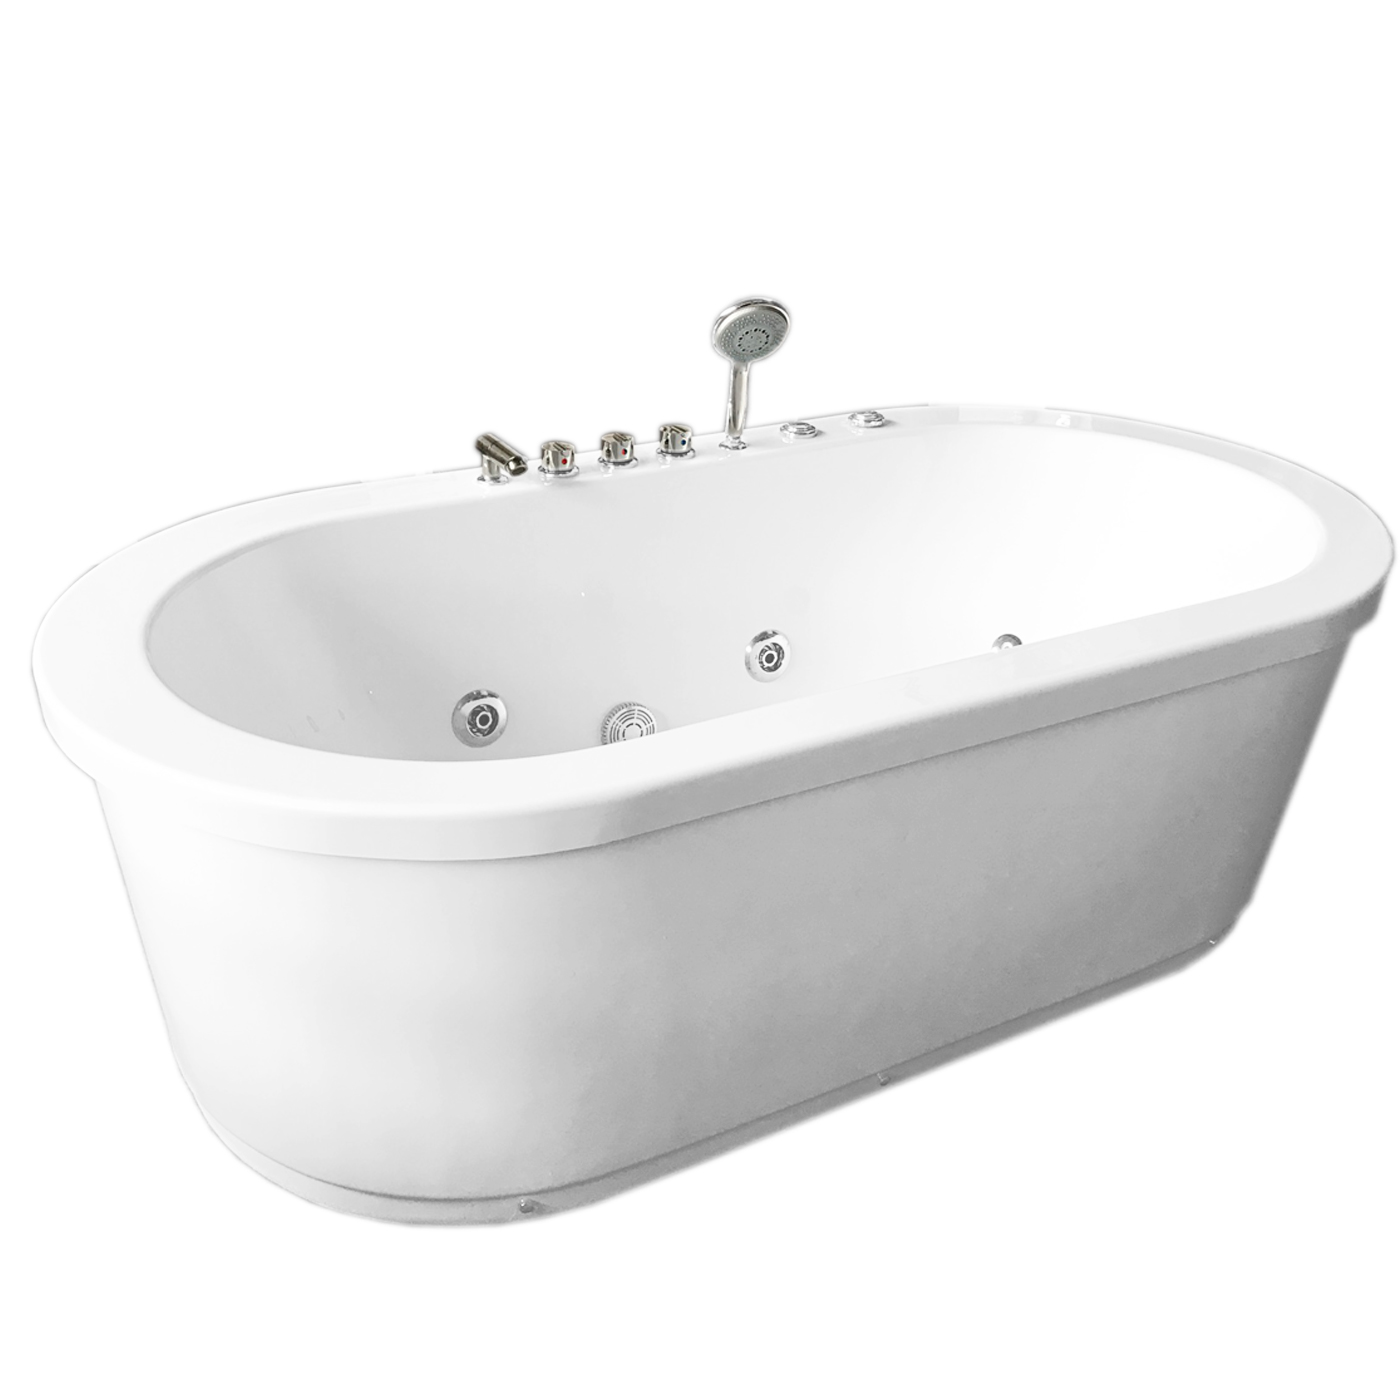 Rio - Whirpool Freestanding Bathtub hot tub - SimbashoppingUSA